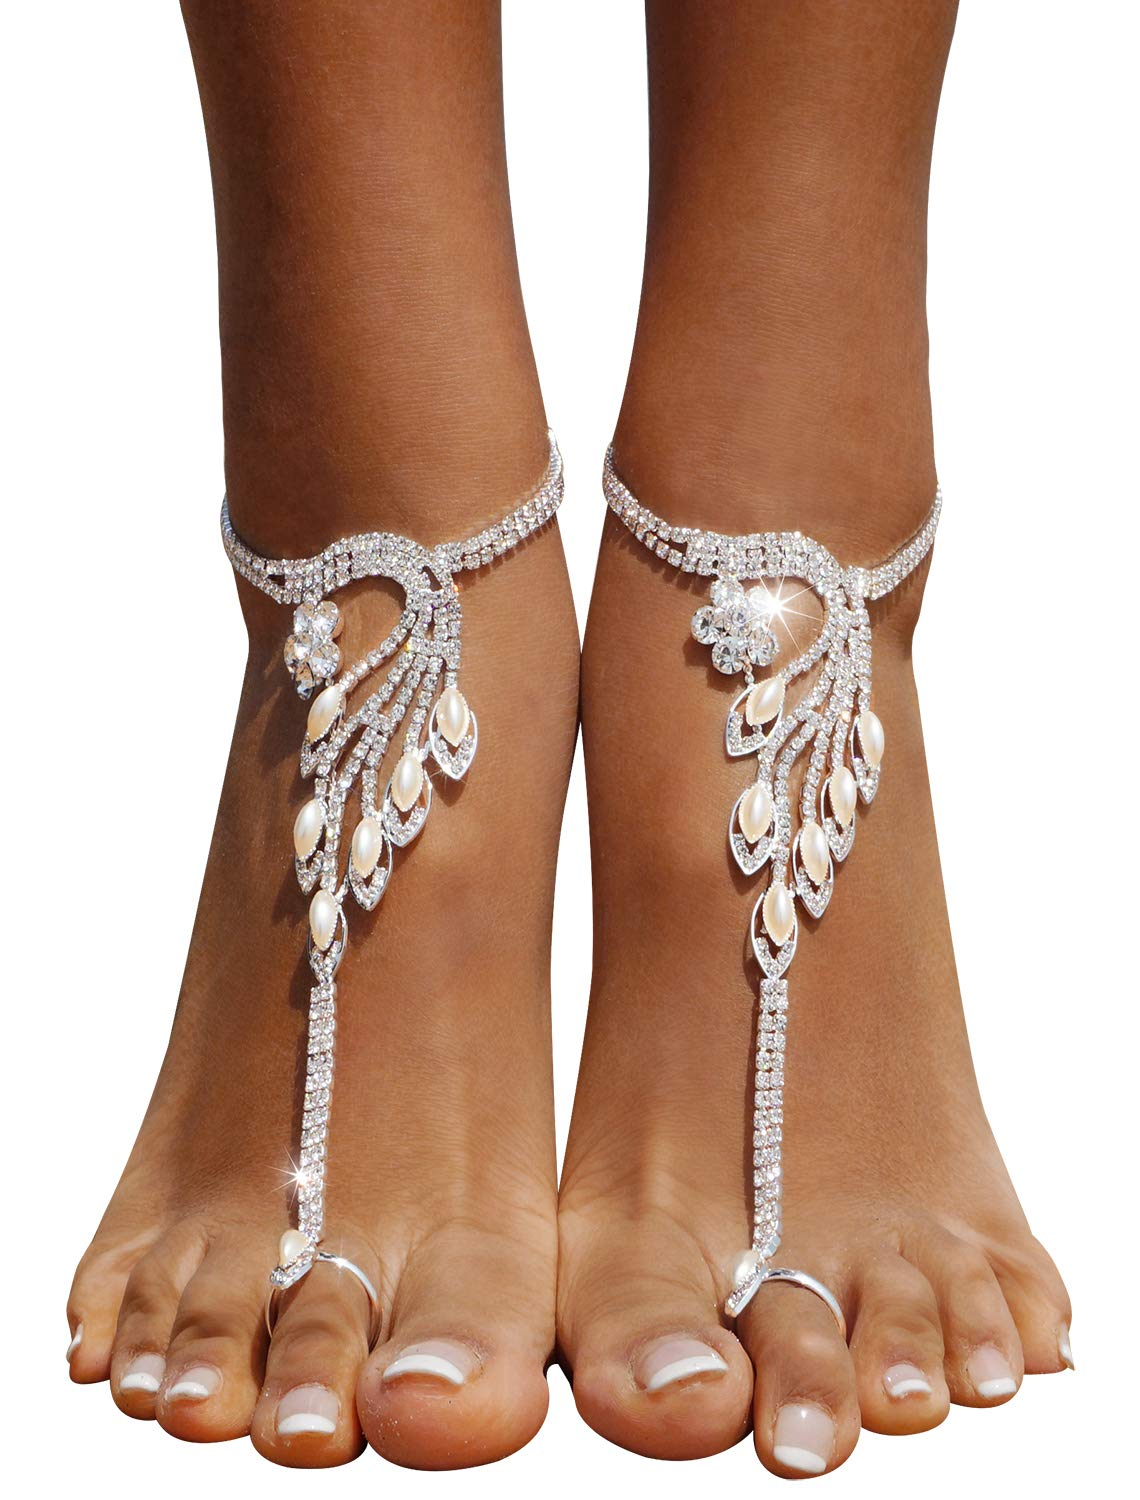 Bellady Women's Foot Chain 2 Pcs Barefoot Sandals Anklet Beach Wedding Jewelry,Silver_Style 8